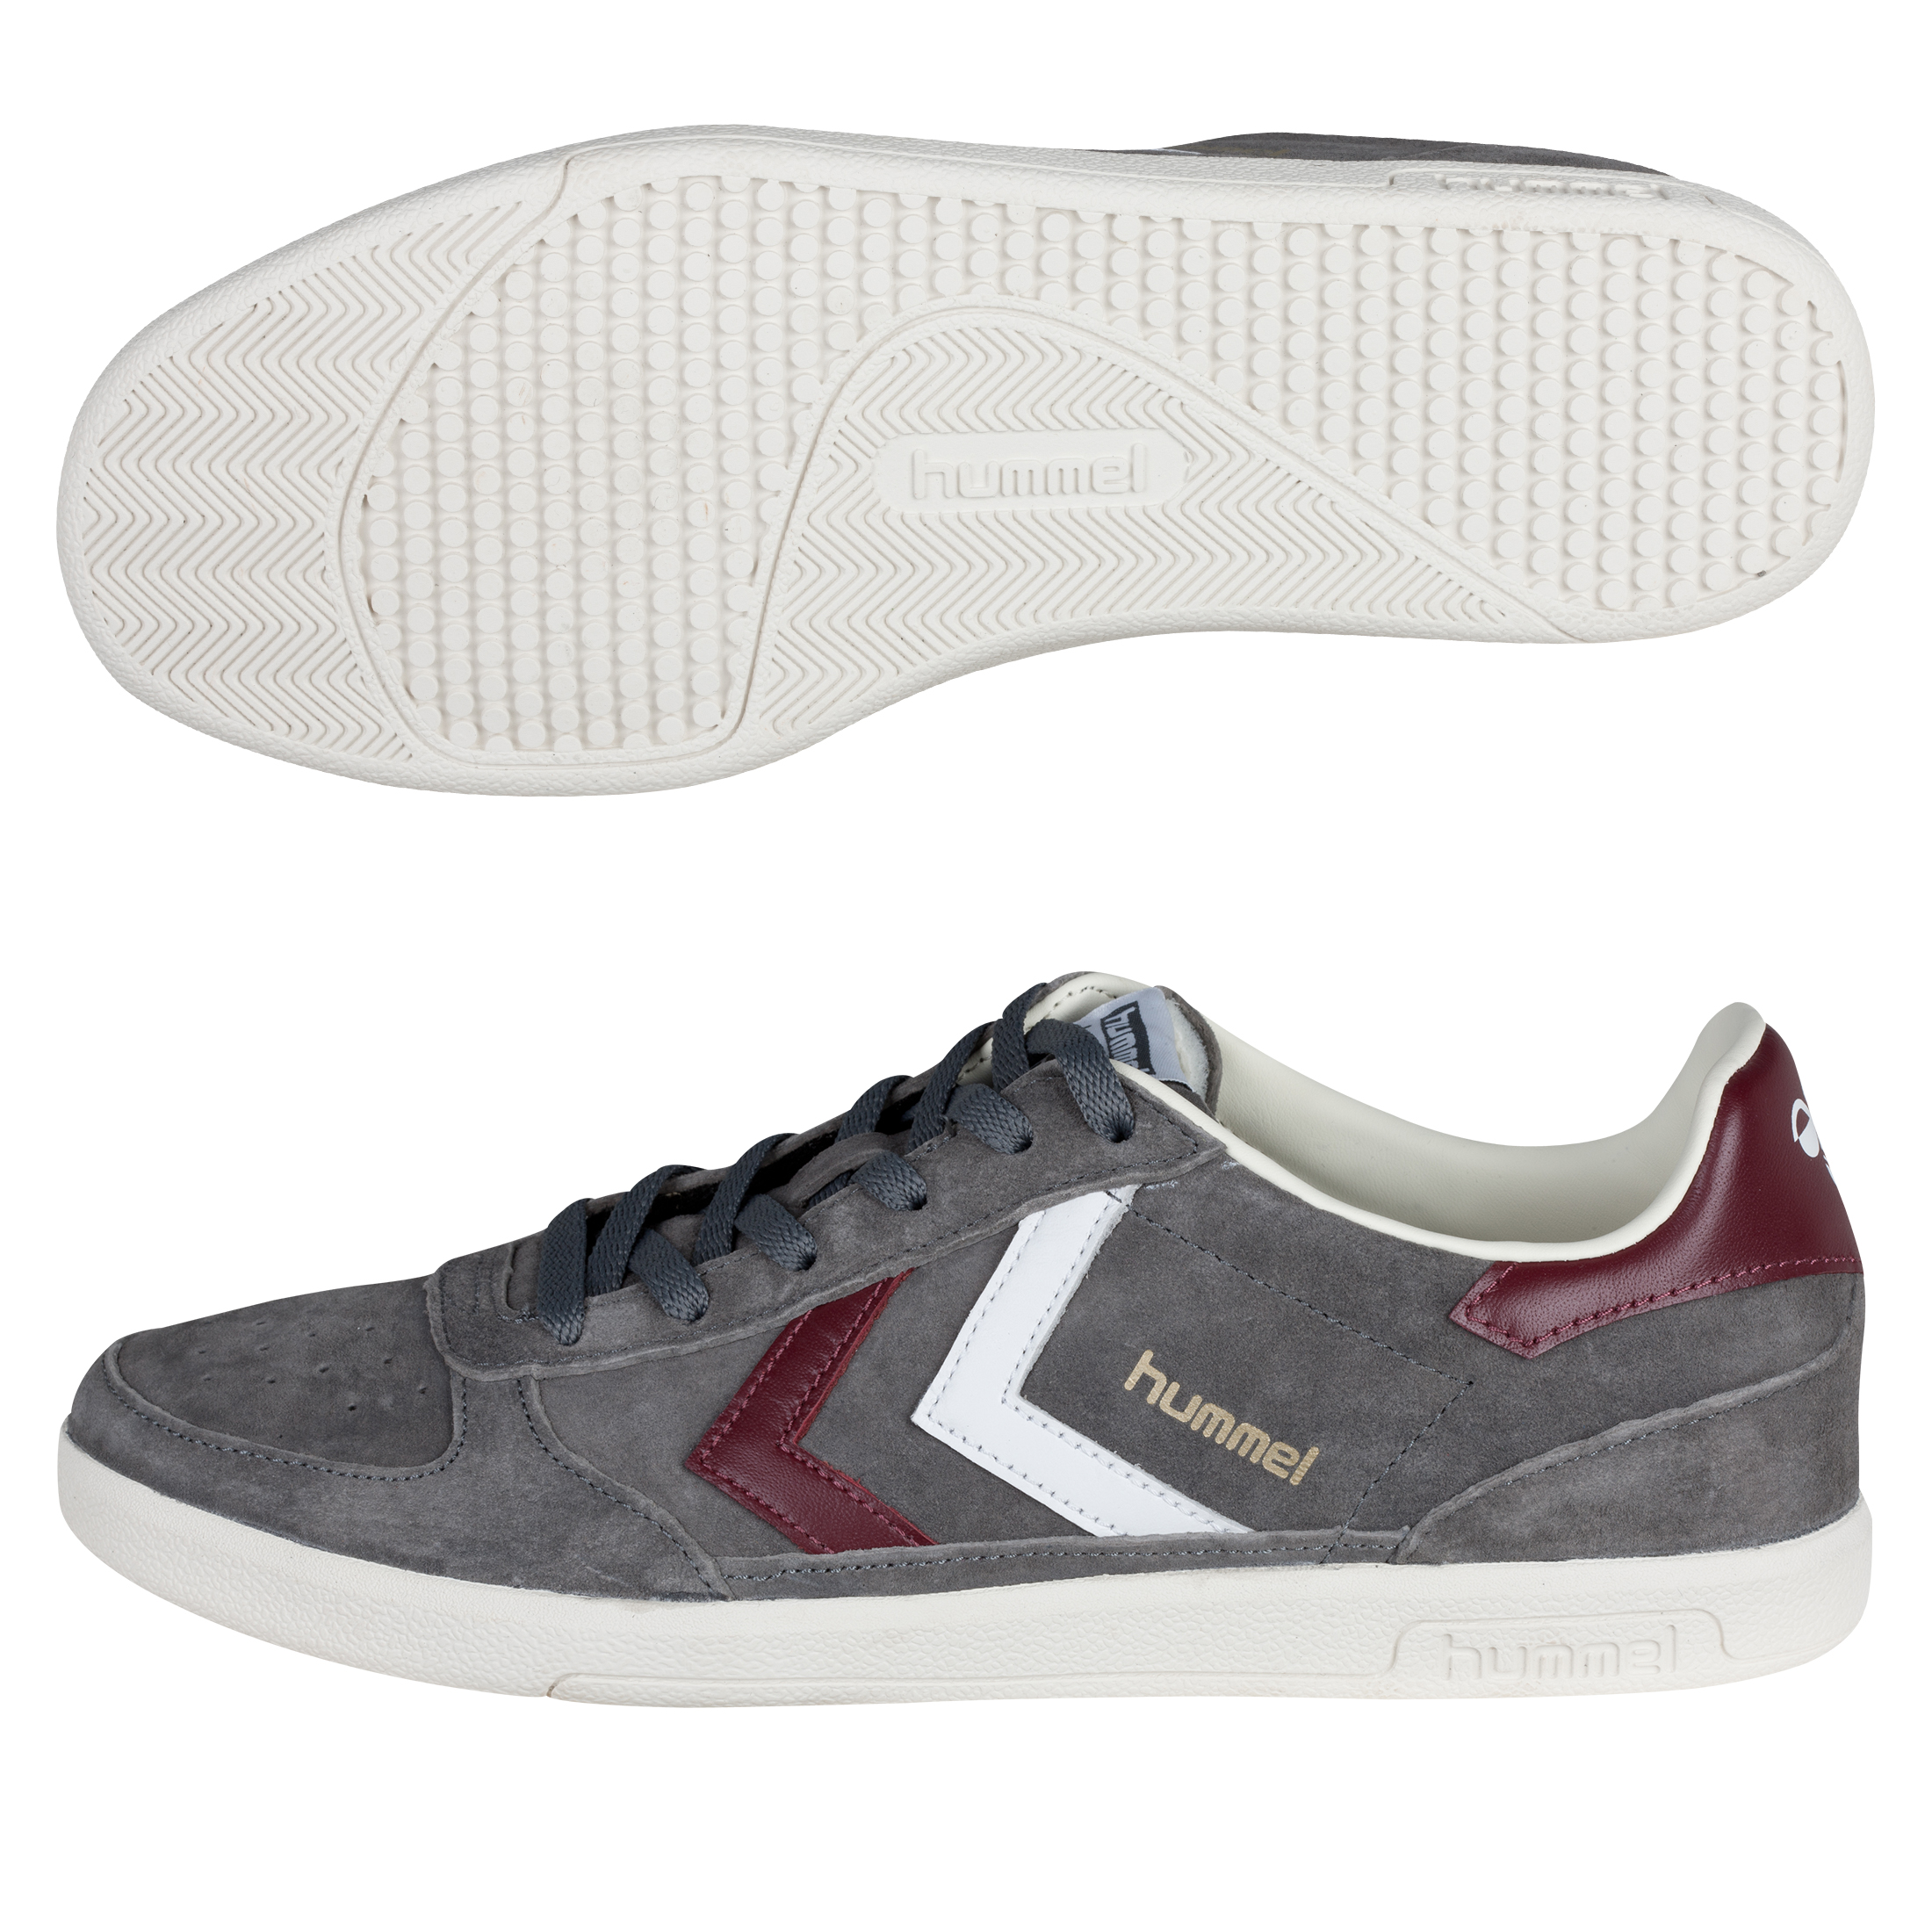 Hummel Victory Low Trainers - Castle Rock/Tawney Port/White